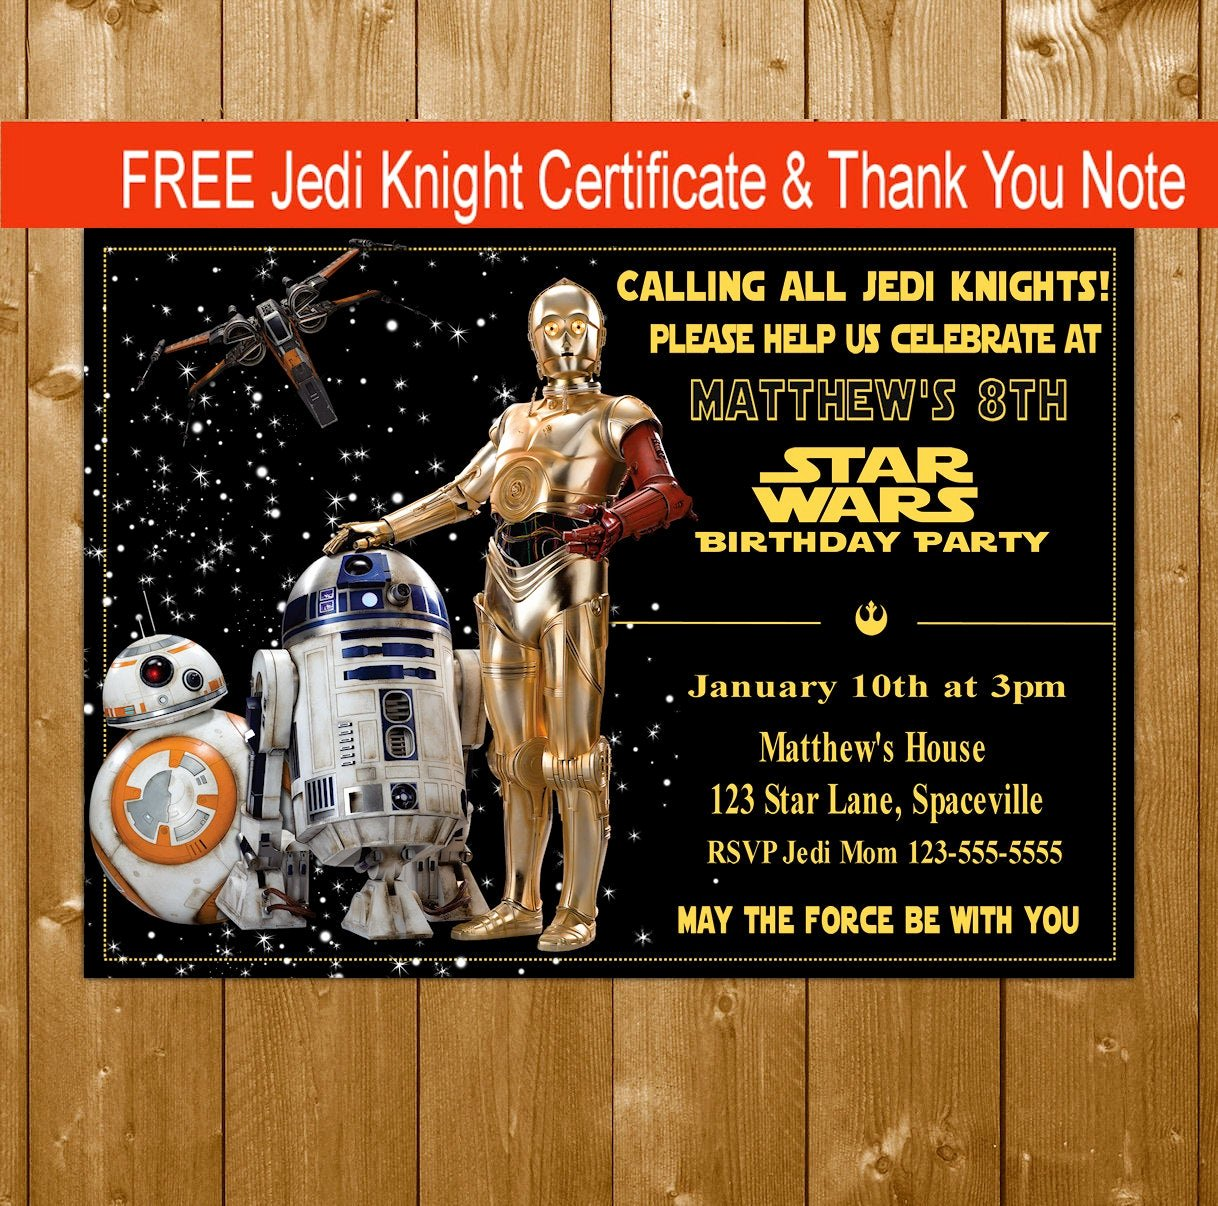 Free Star Wars Invitations Elegant Star Wars Invitations Birthday Party Star Wars Droids Bb8